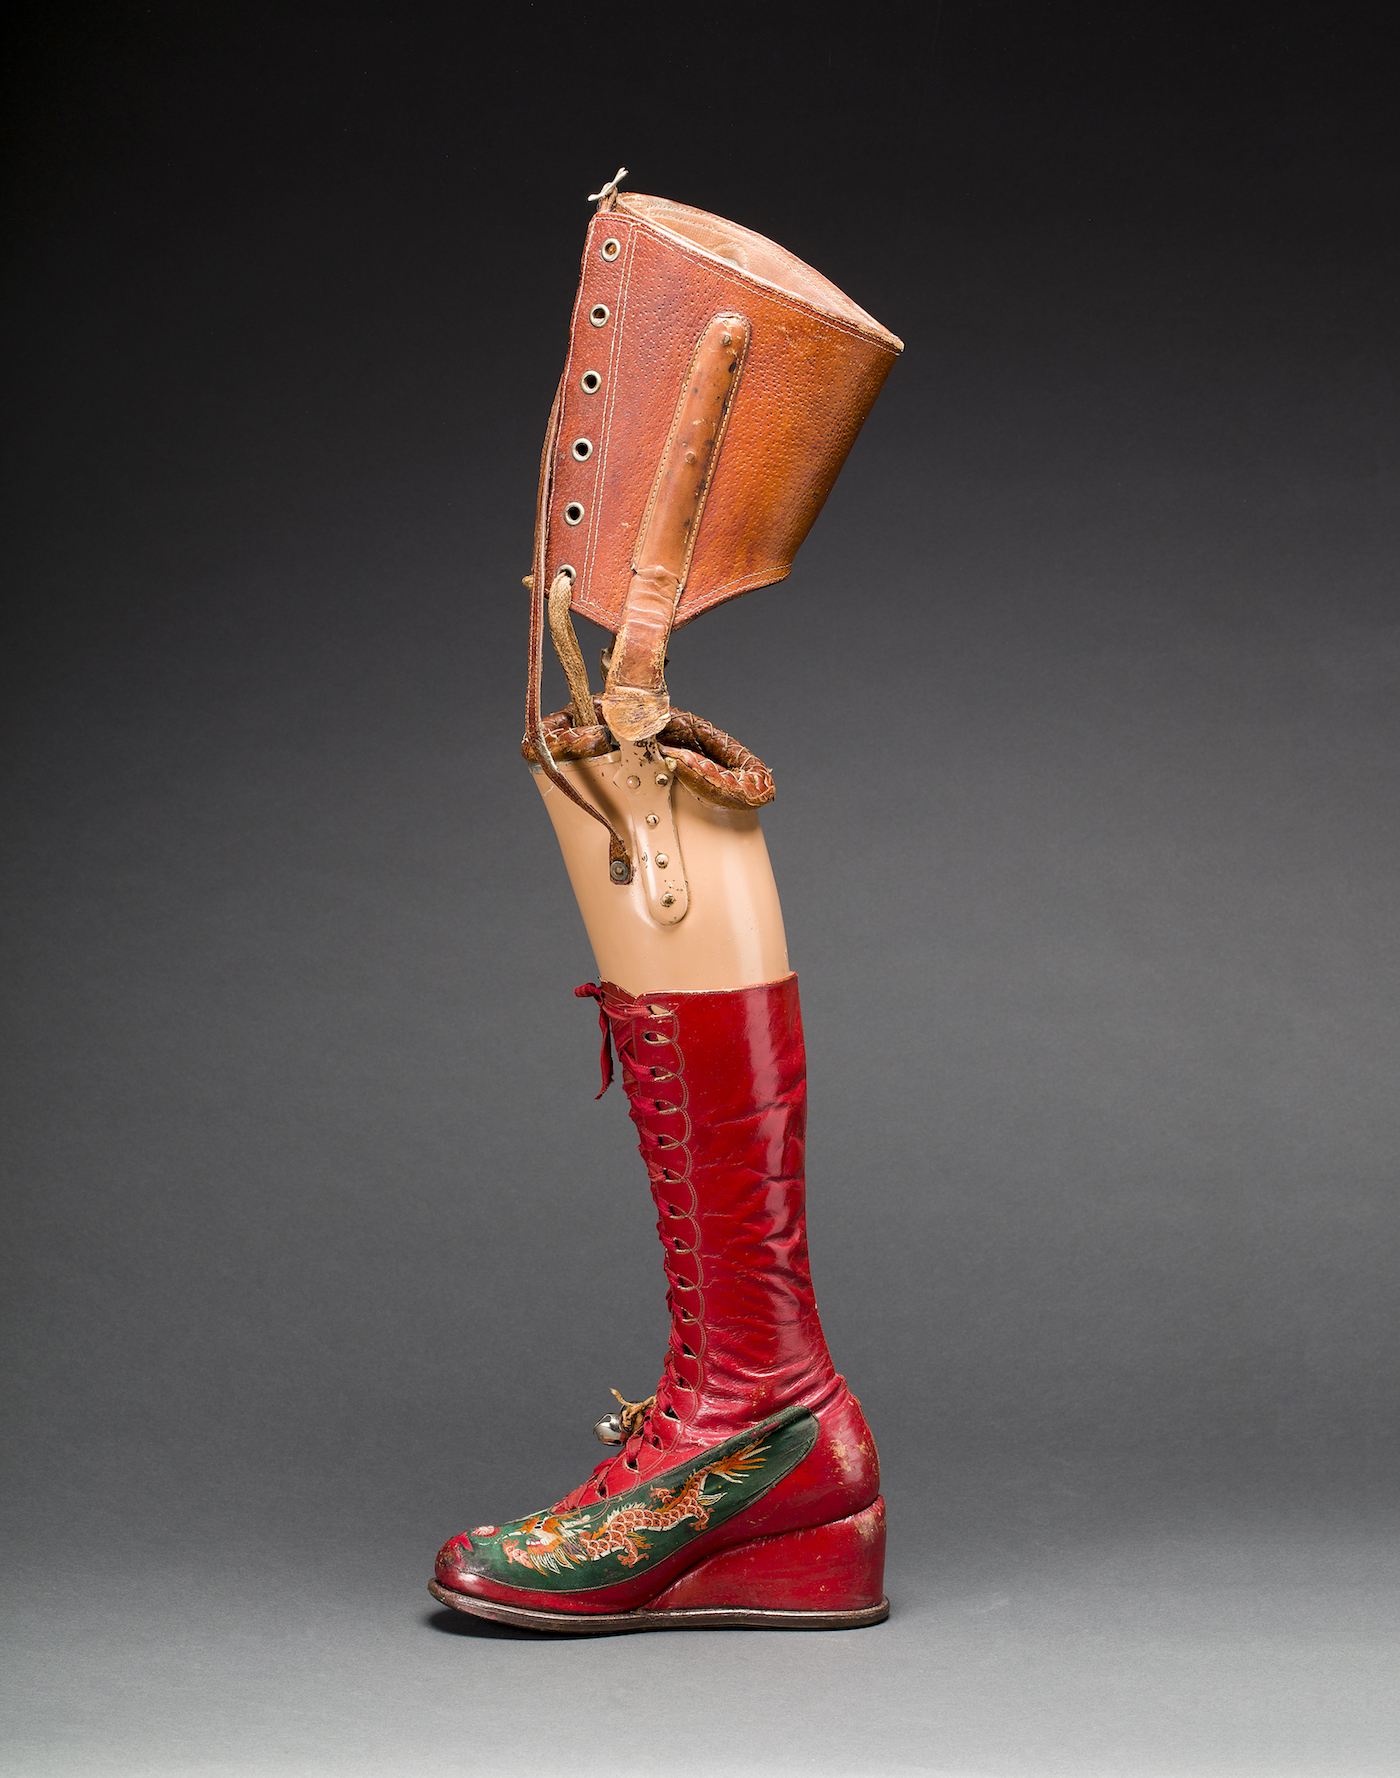 Prosthetic leg with leather boot. Appliquéd silk with embroidered Chinese motifs. From Frida Kahlo: Making Her Self Up, 16 June-14 November. Photograph Javier Hinojosa. Museo Frida Kahlo. Diego Riviera and Frida Kahlo Archives